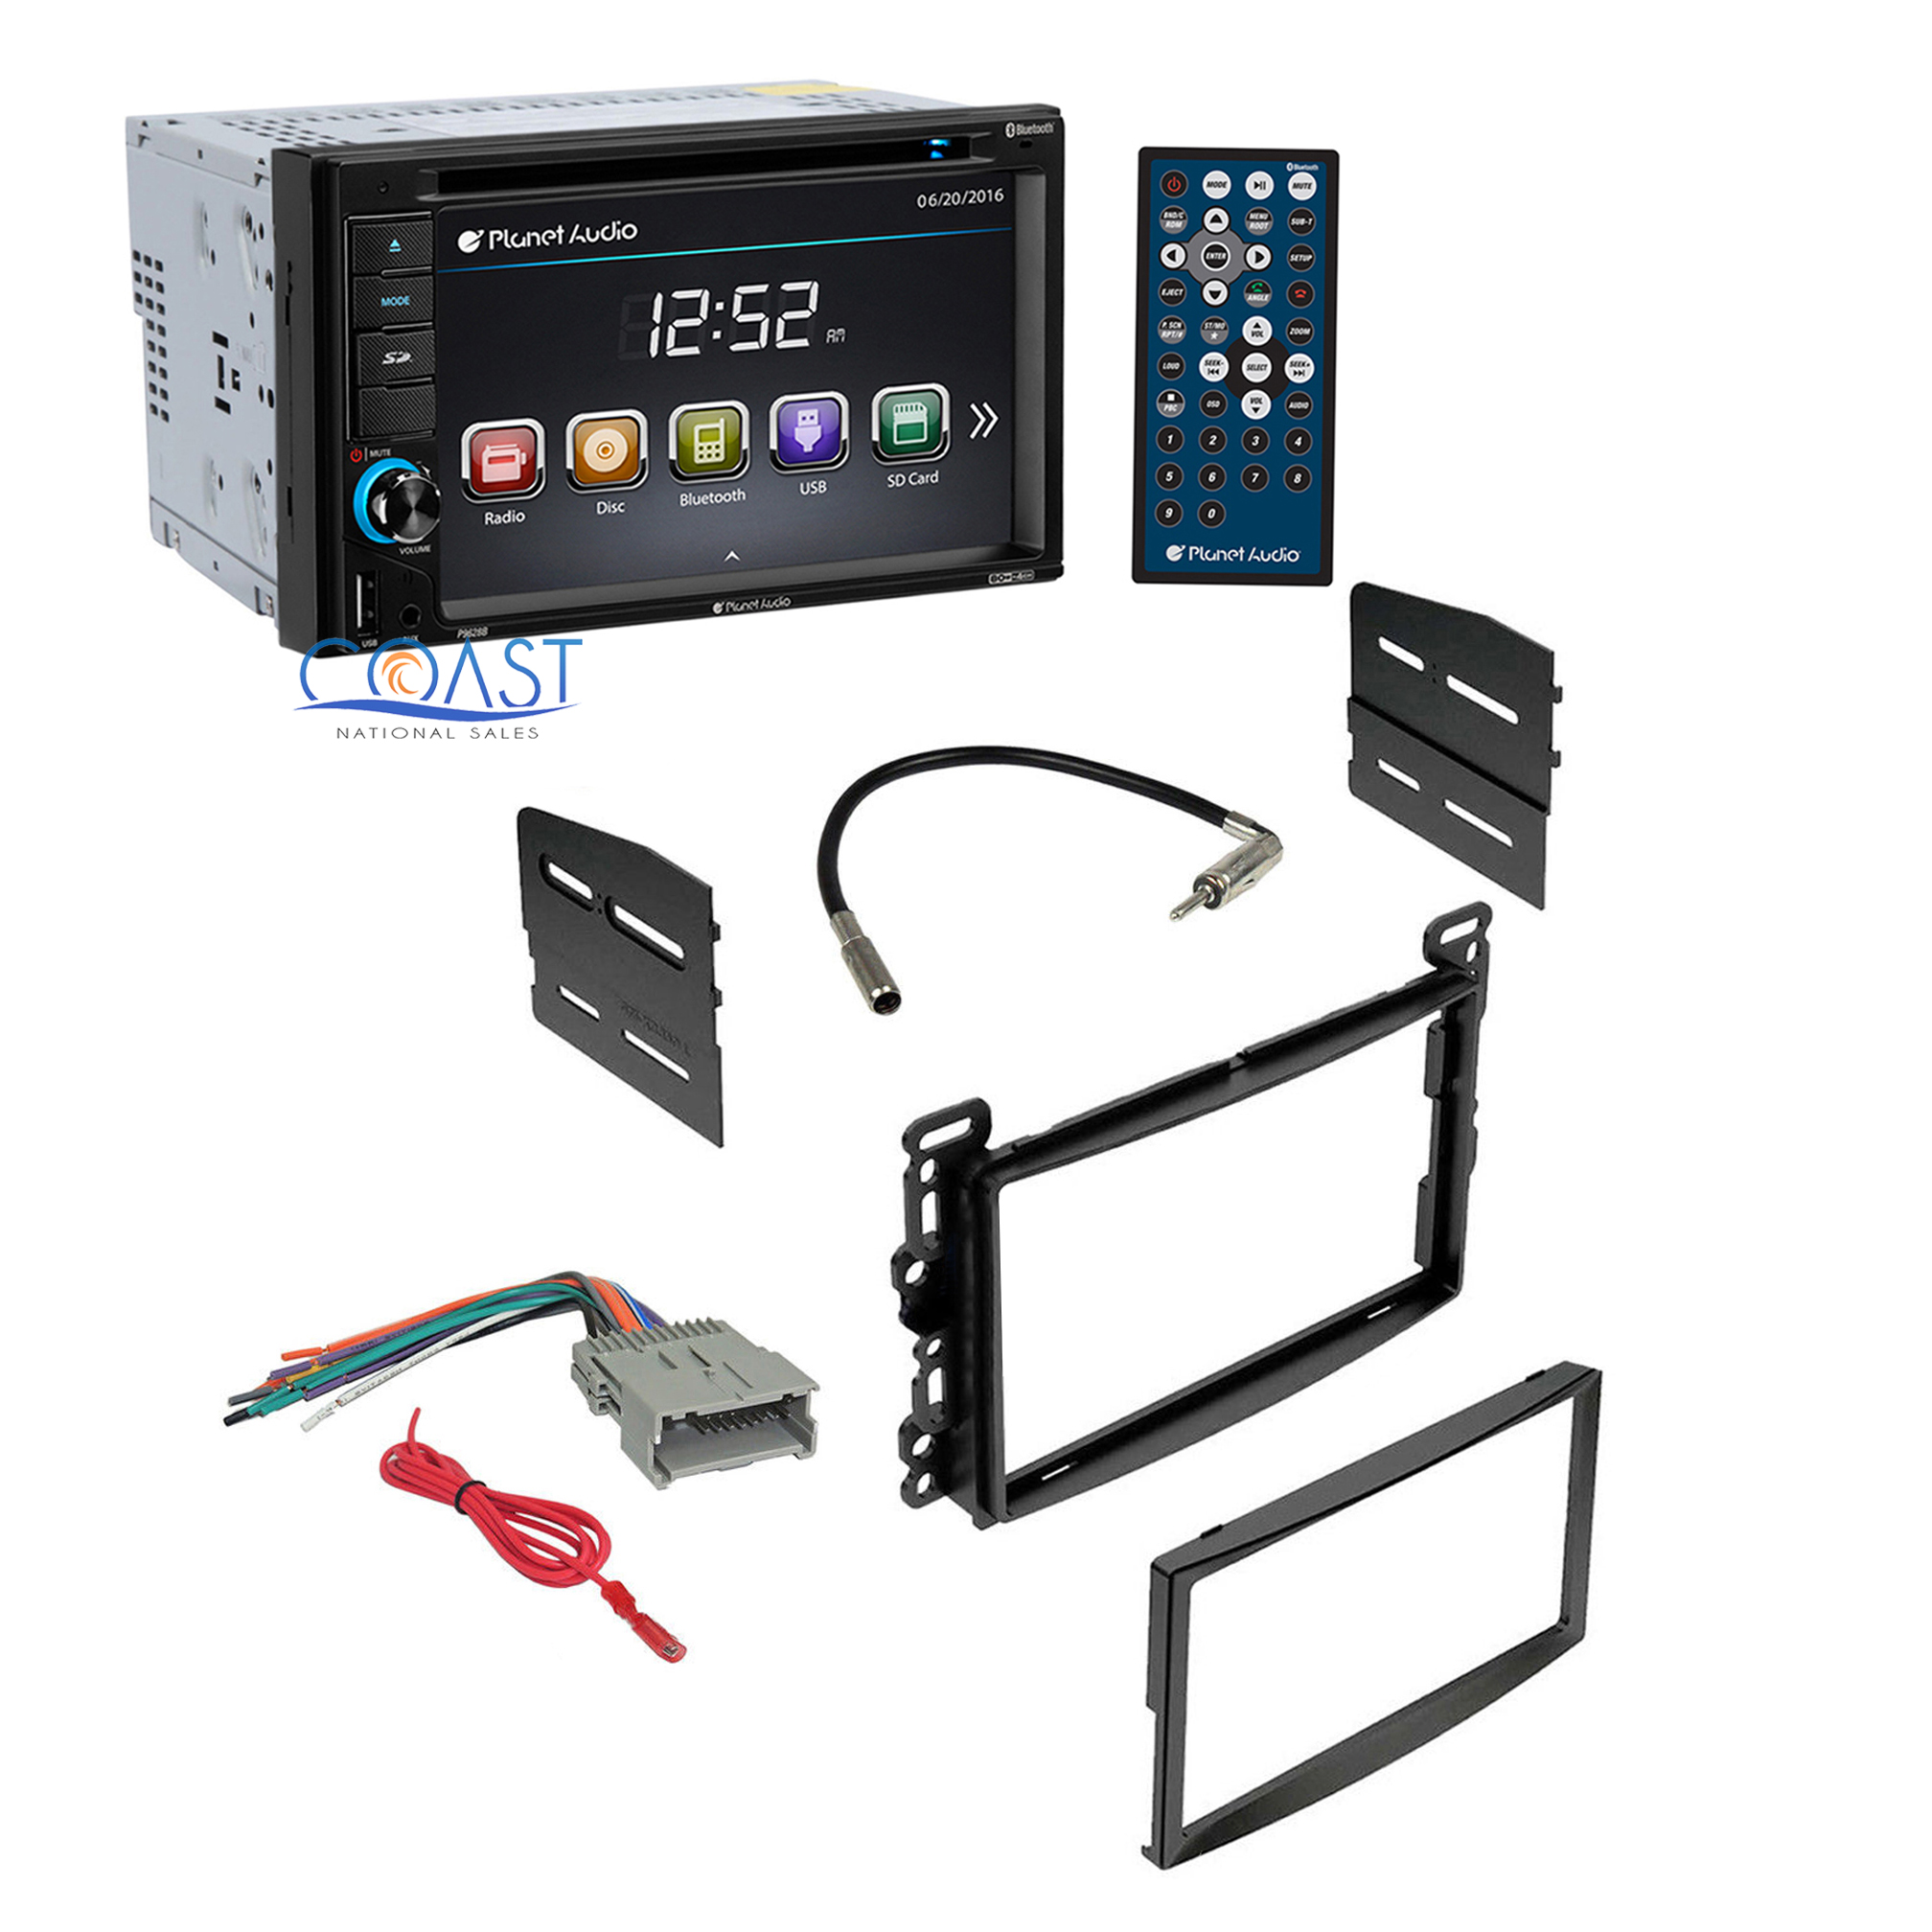 planet audio car radio stereo dash kit harness for 2004. Black Bedroom Furniture Sets. Home Design Ideas